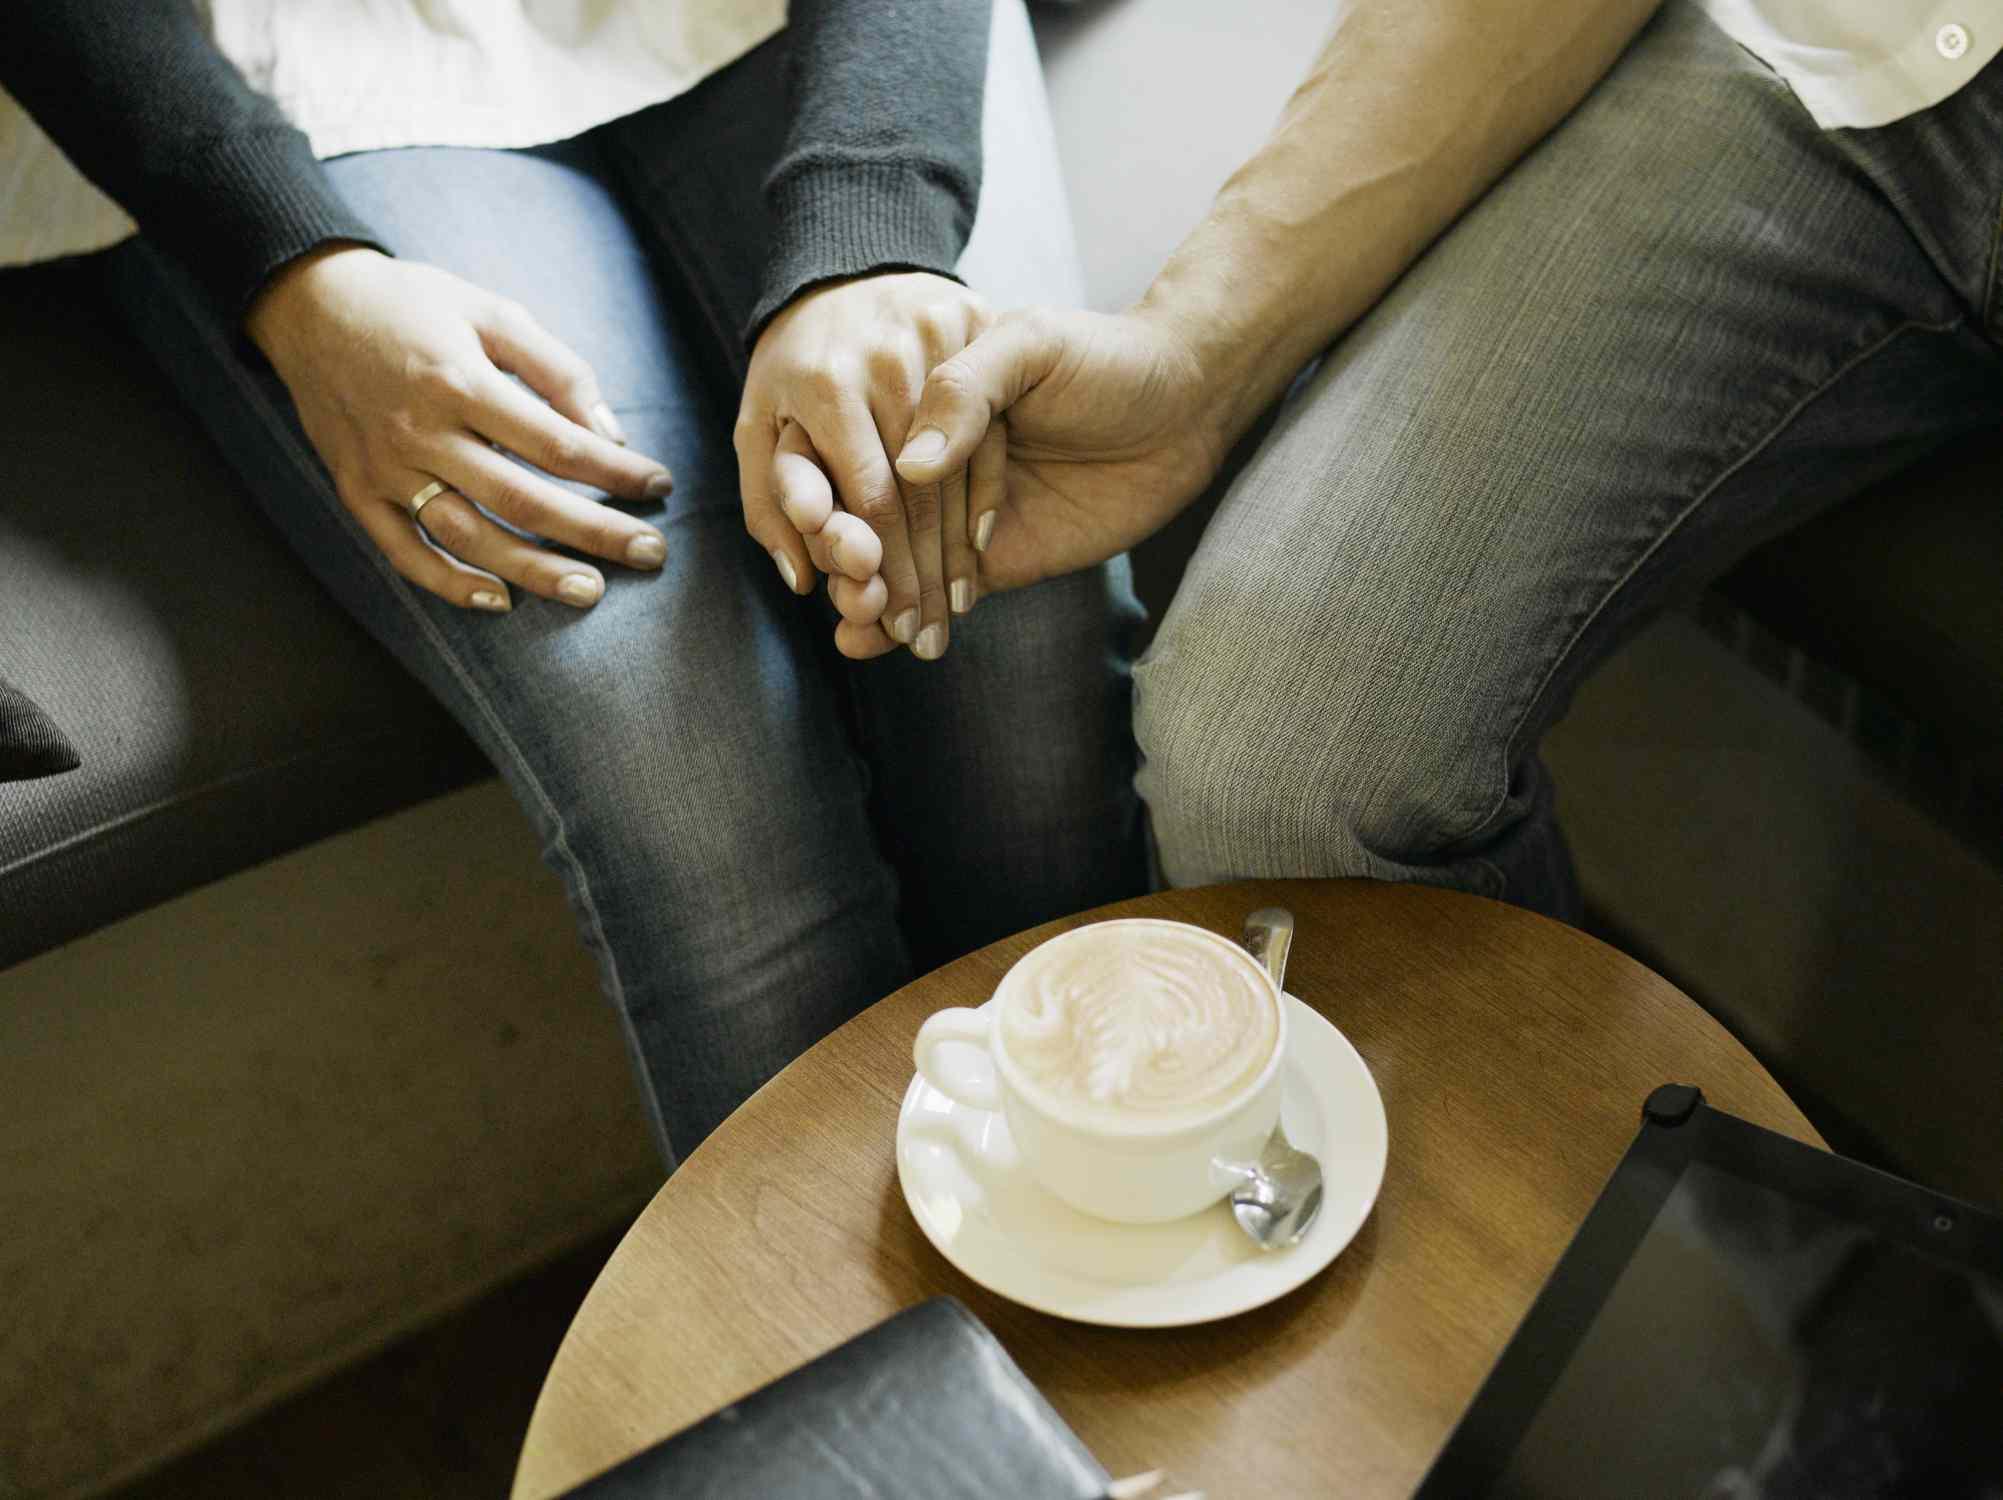 A couple on a coffee date holding hands.